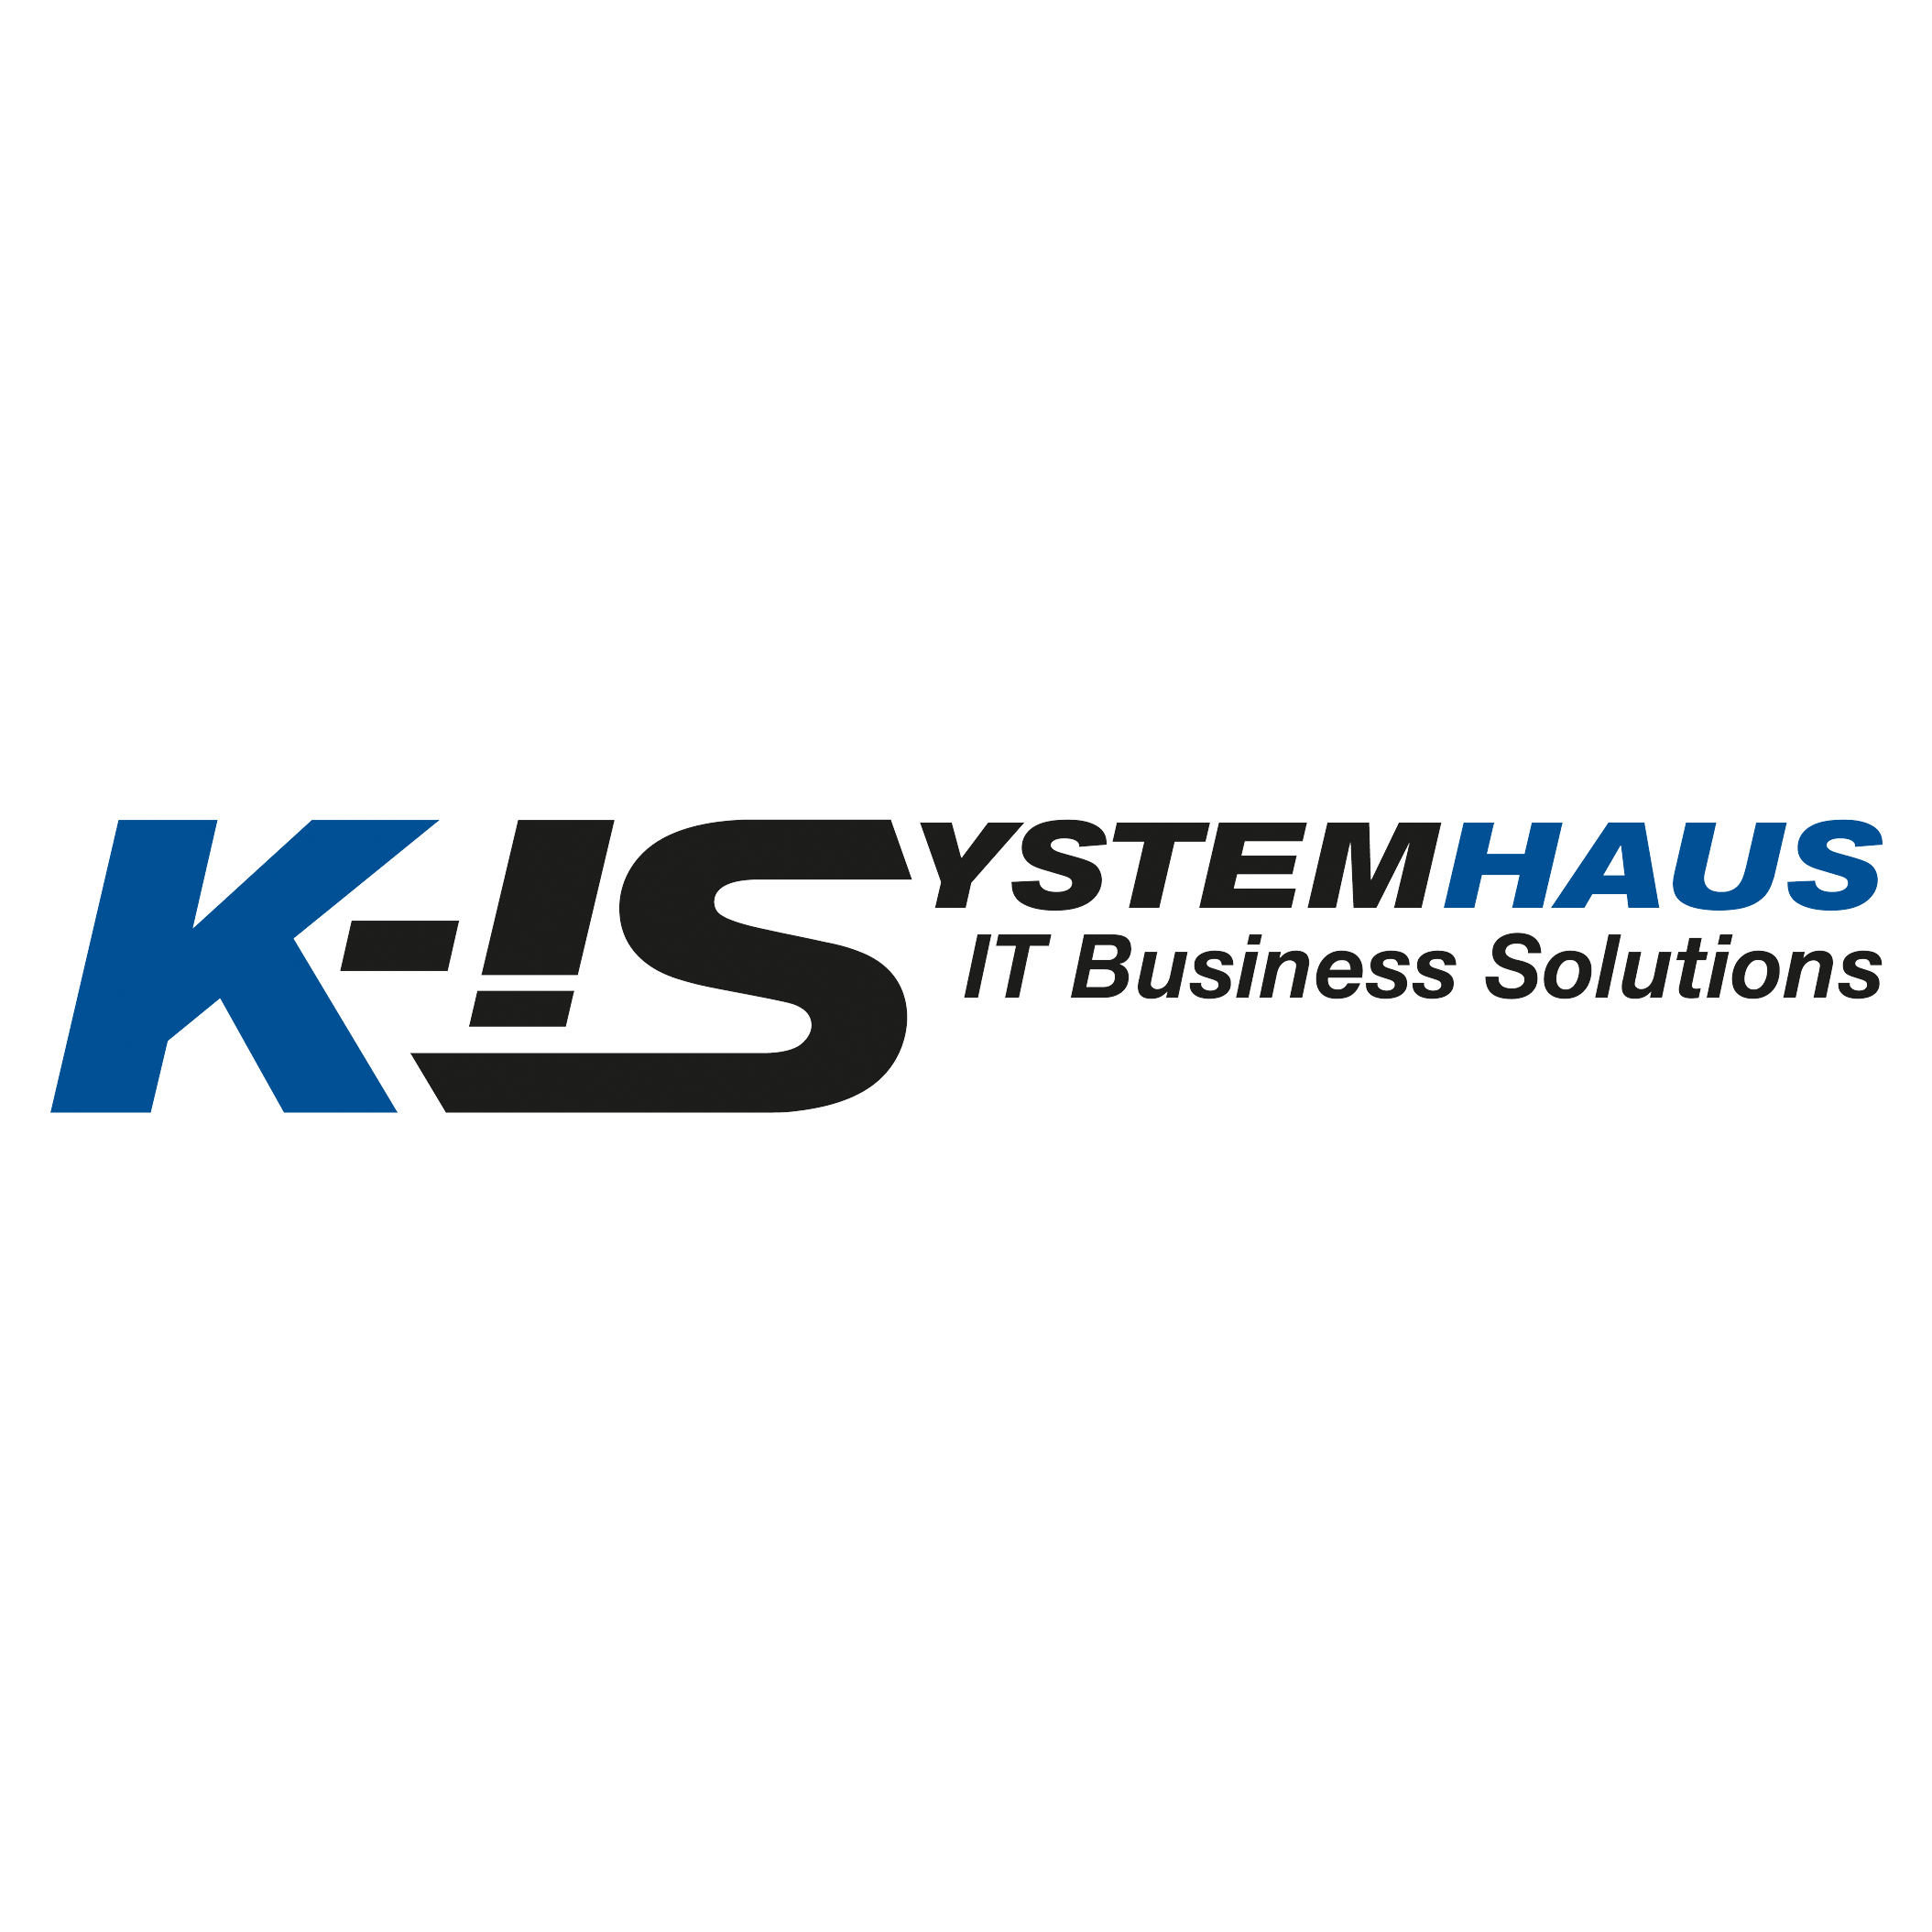 K-iS Systemhaus GmbH